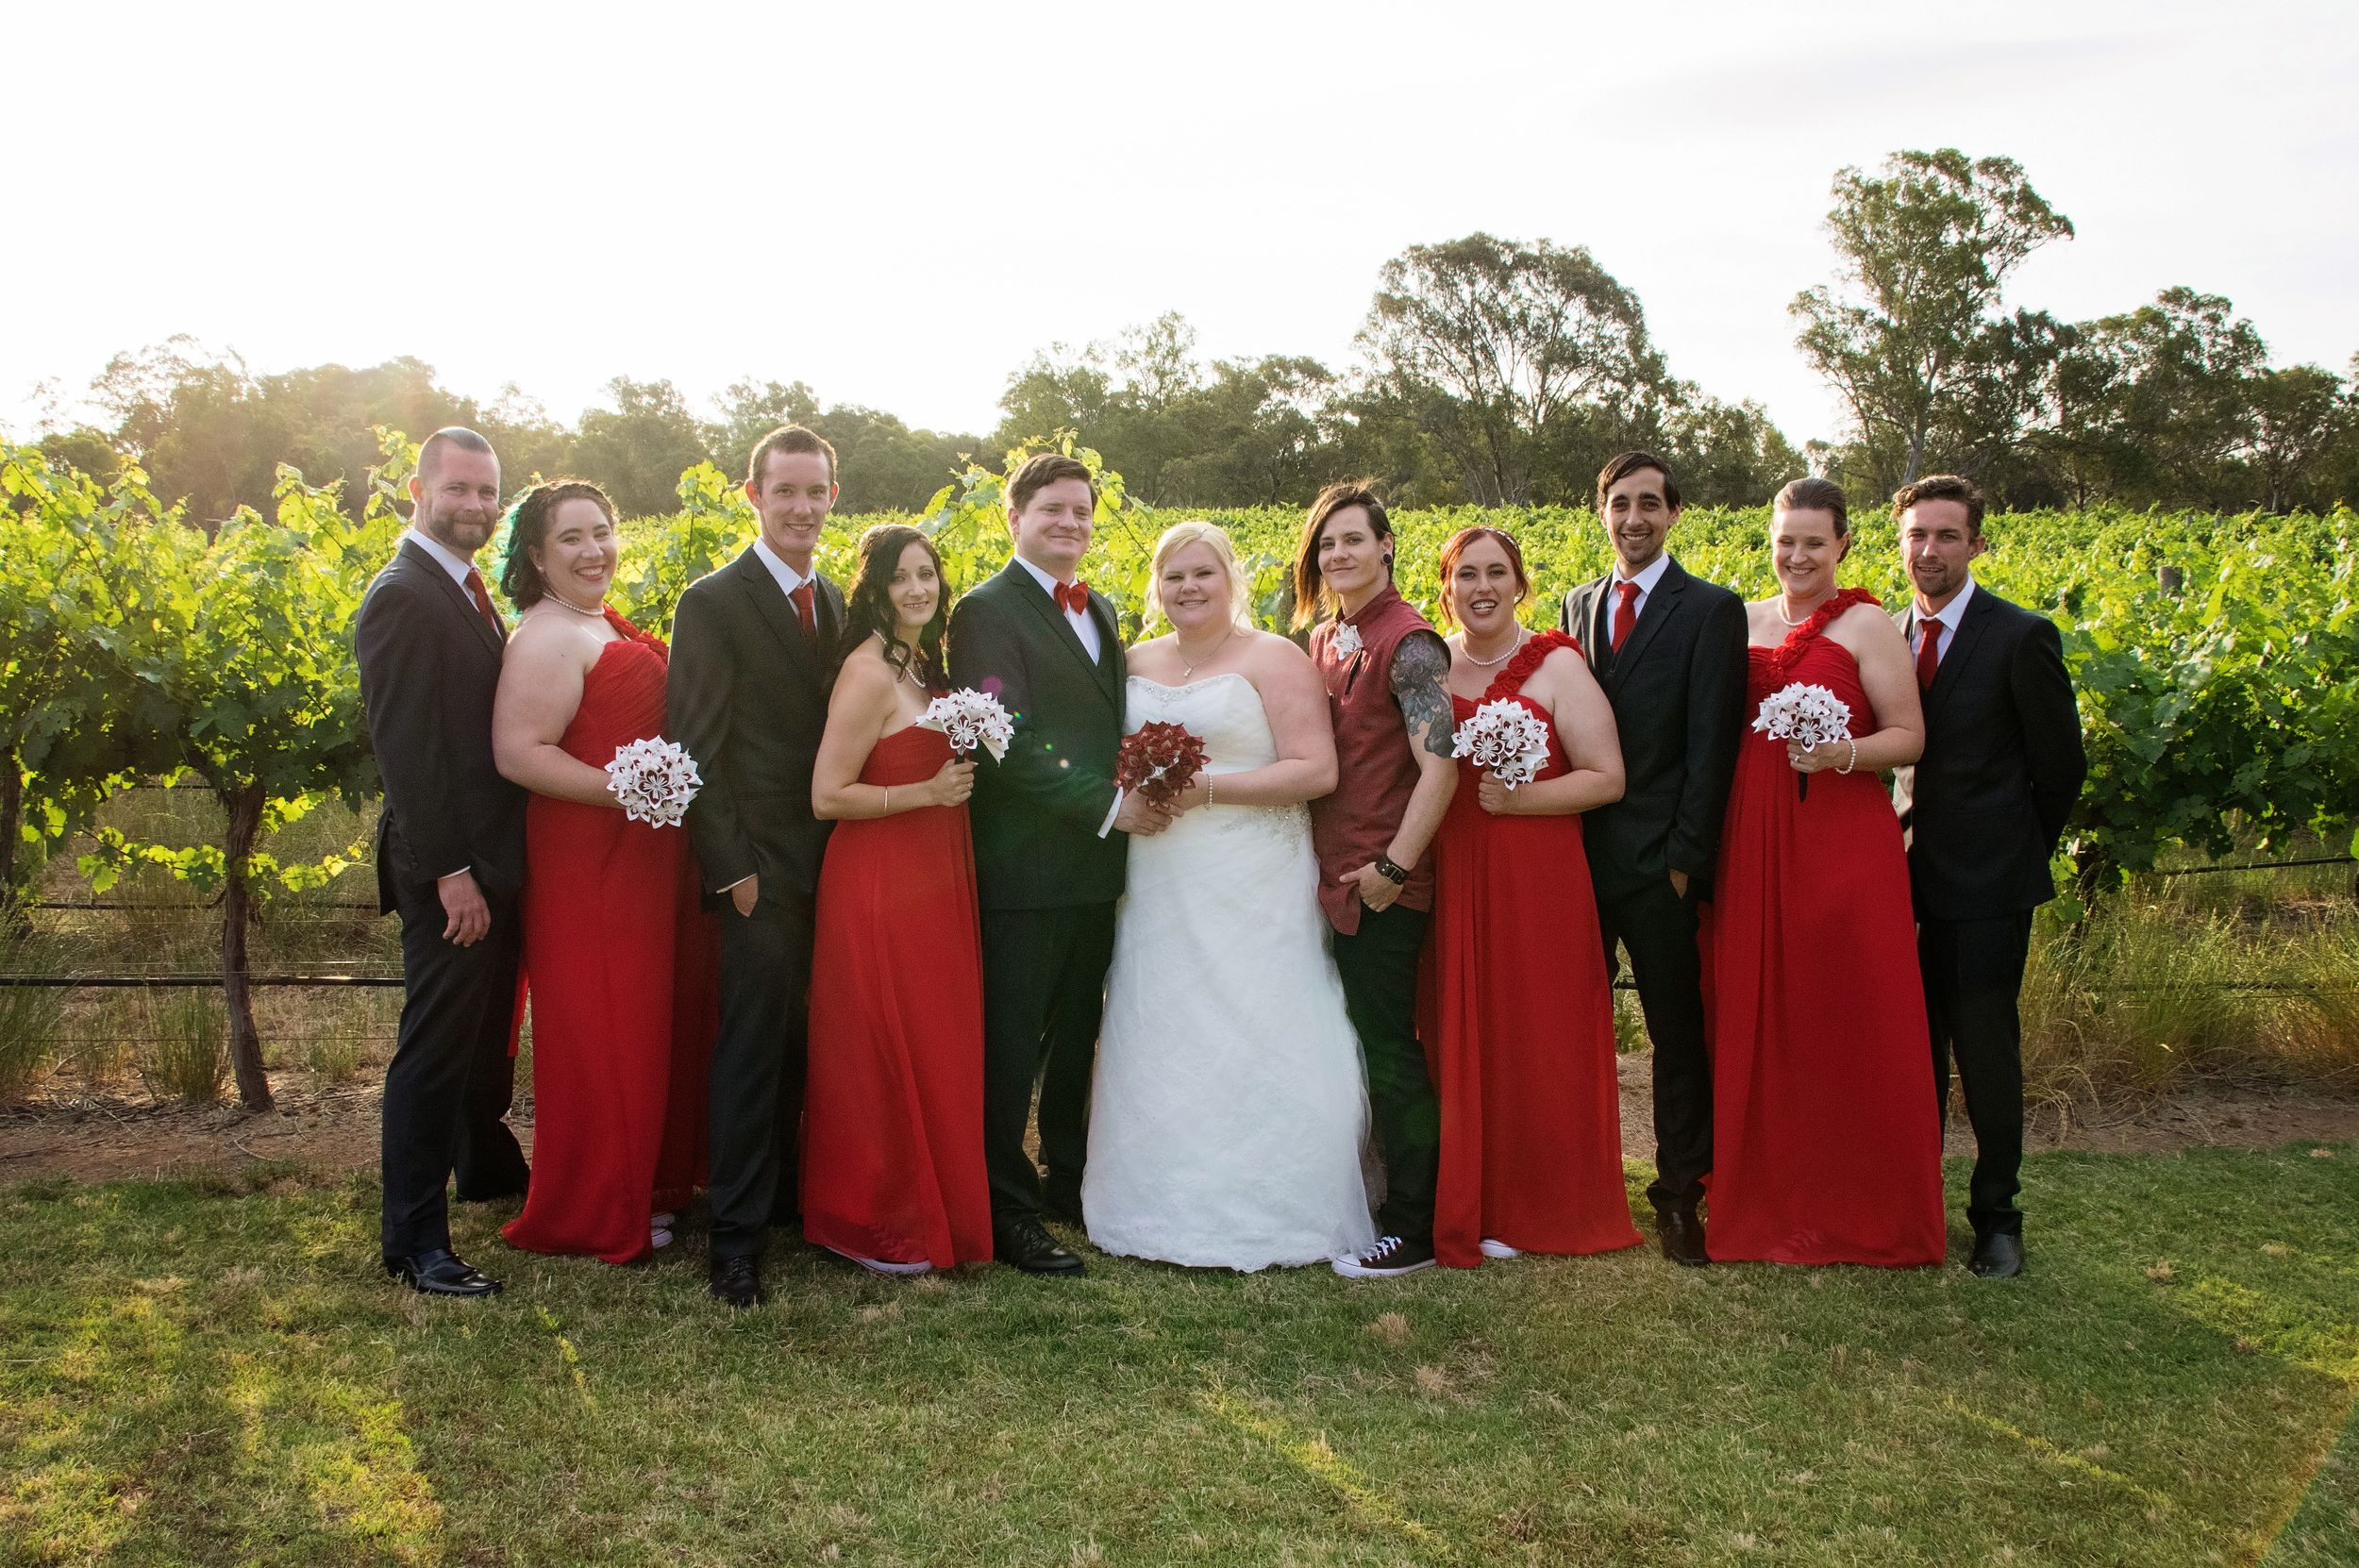 bridal party in red and black posing with bride and groom in wineyard